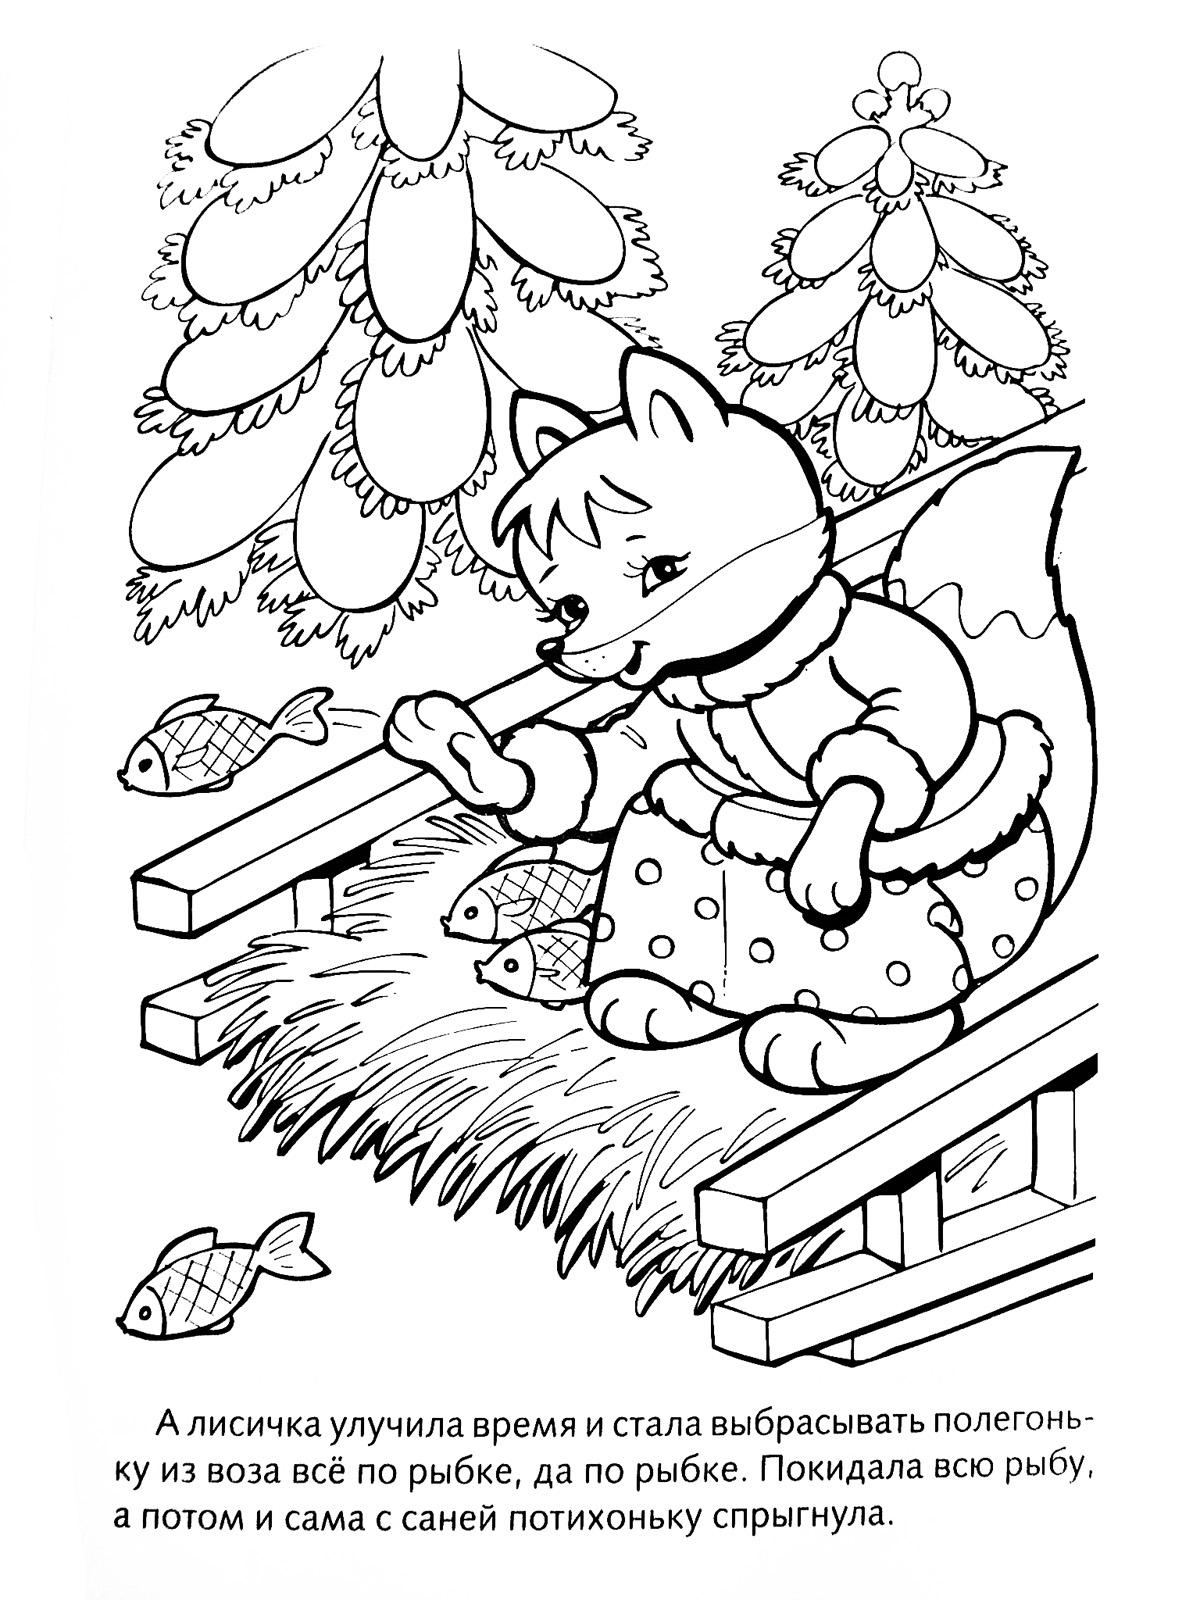 Coloring coloring pages books for children tales A fox seizing the moment and began to throw polegonku of carts for all the fish, but for fish. I leave the fish whole, and then she jumped from the sled slowly